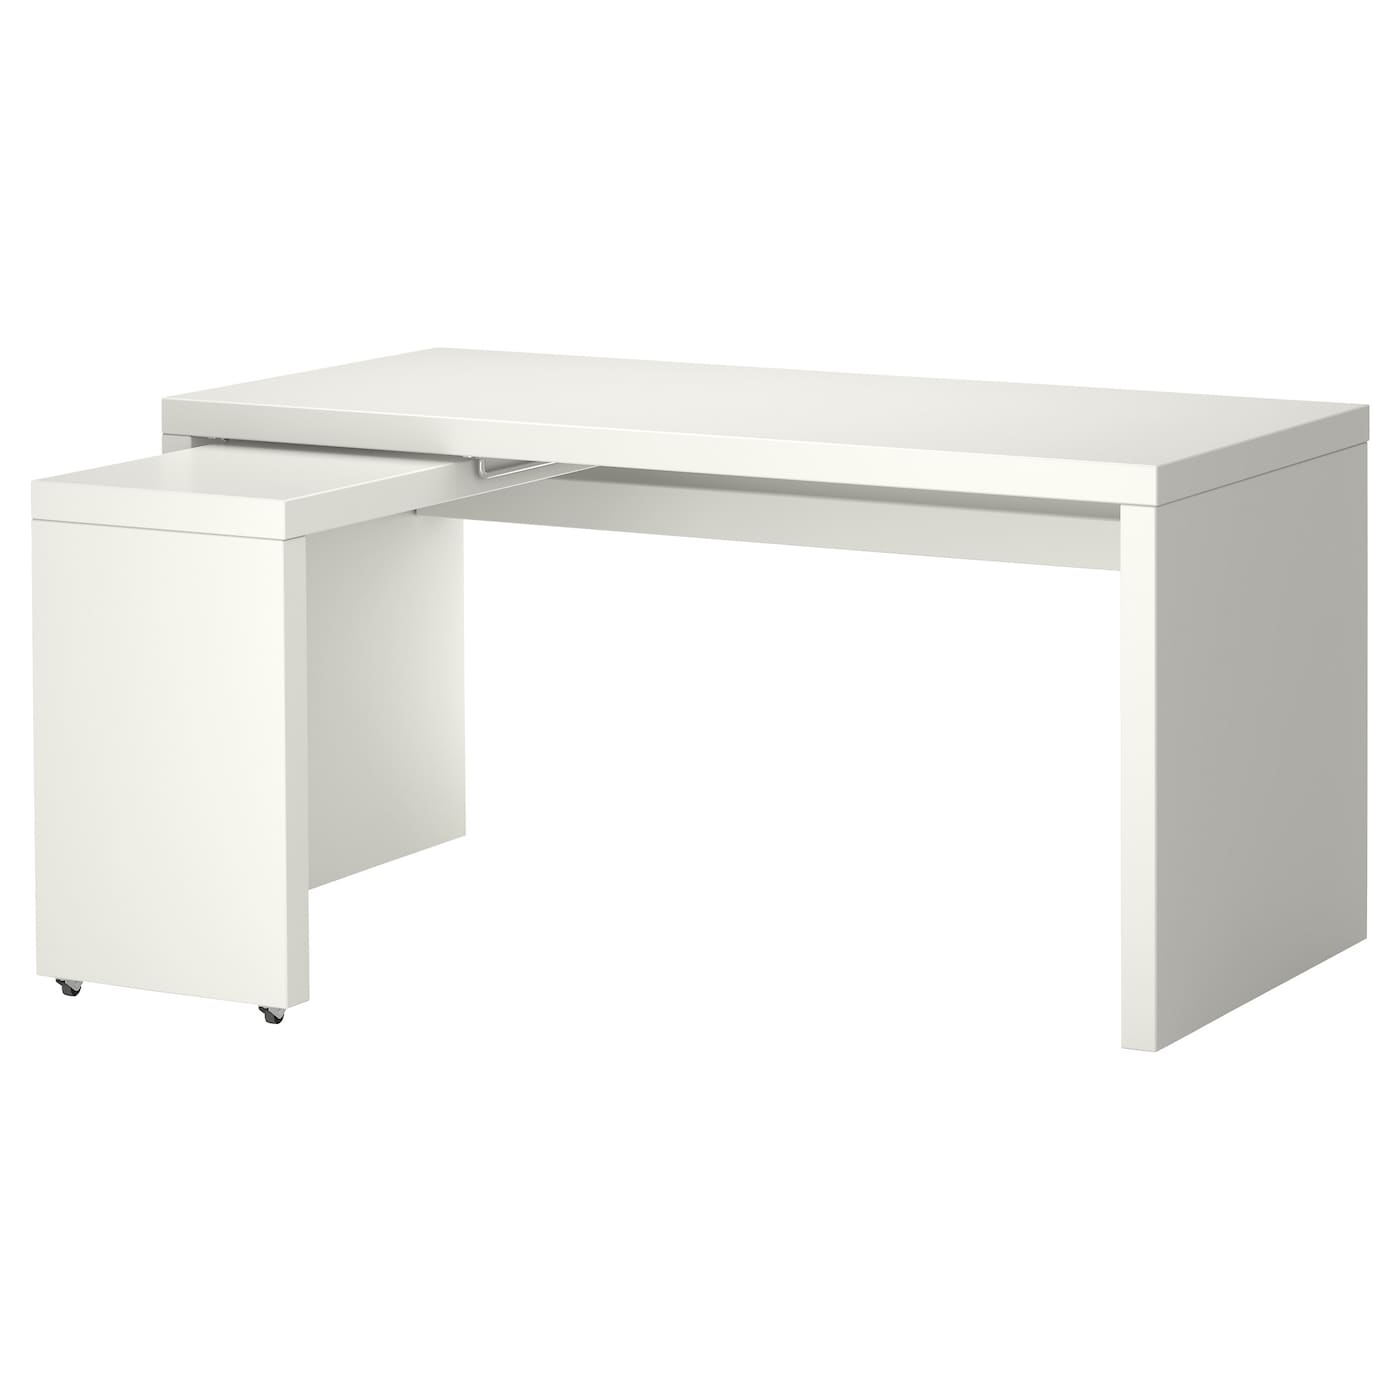 malm bureau avec tablette coulissante blanc 151 x 65 cm ikea. Black Bedroom Furniture Sets. Home Design Ideas